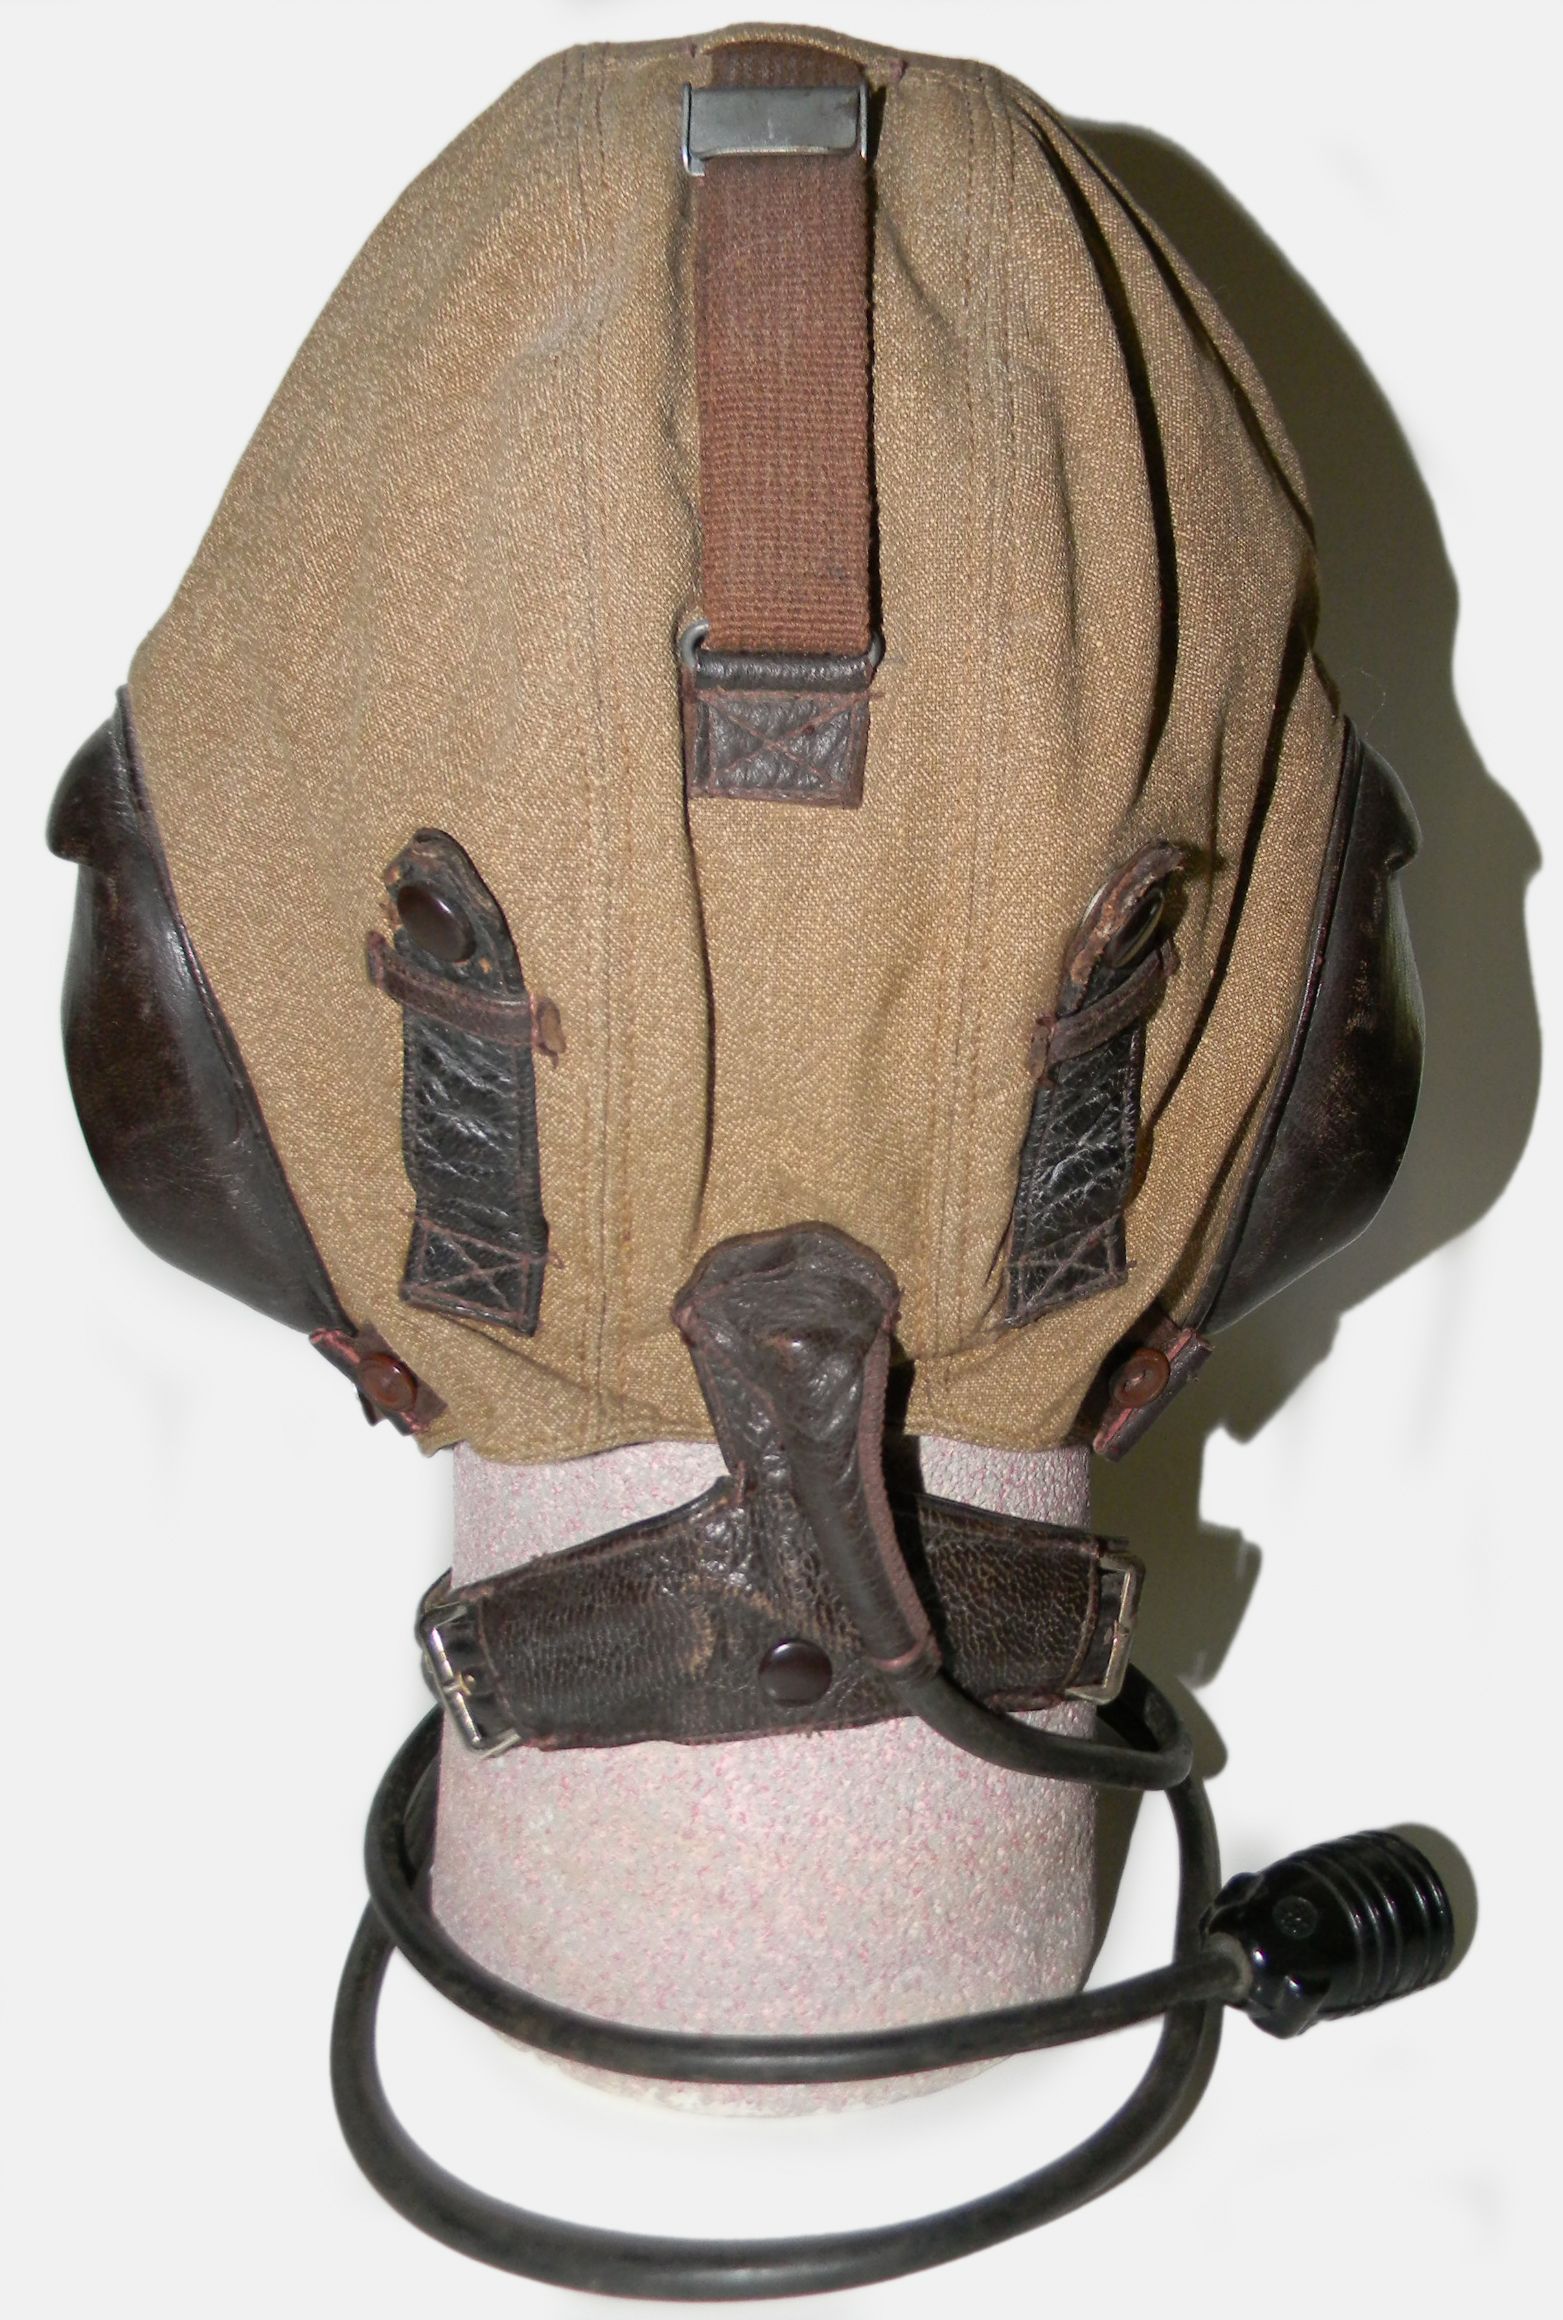 LW LkpS101 flight helmet